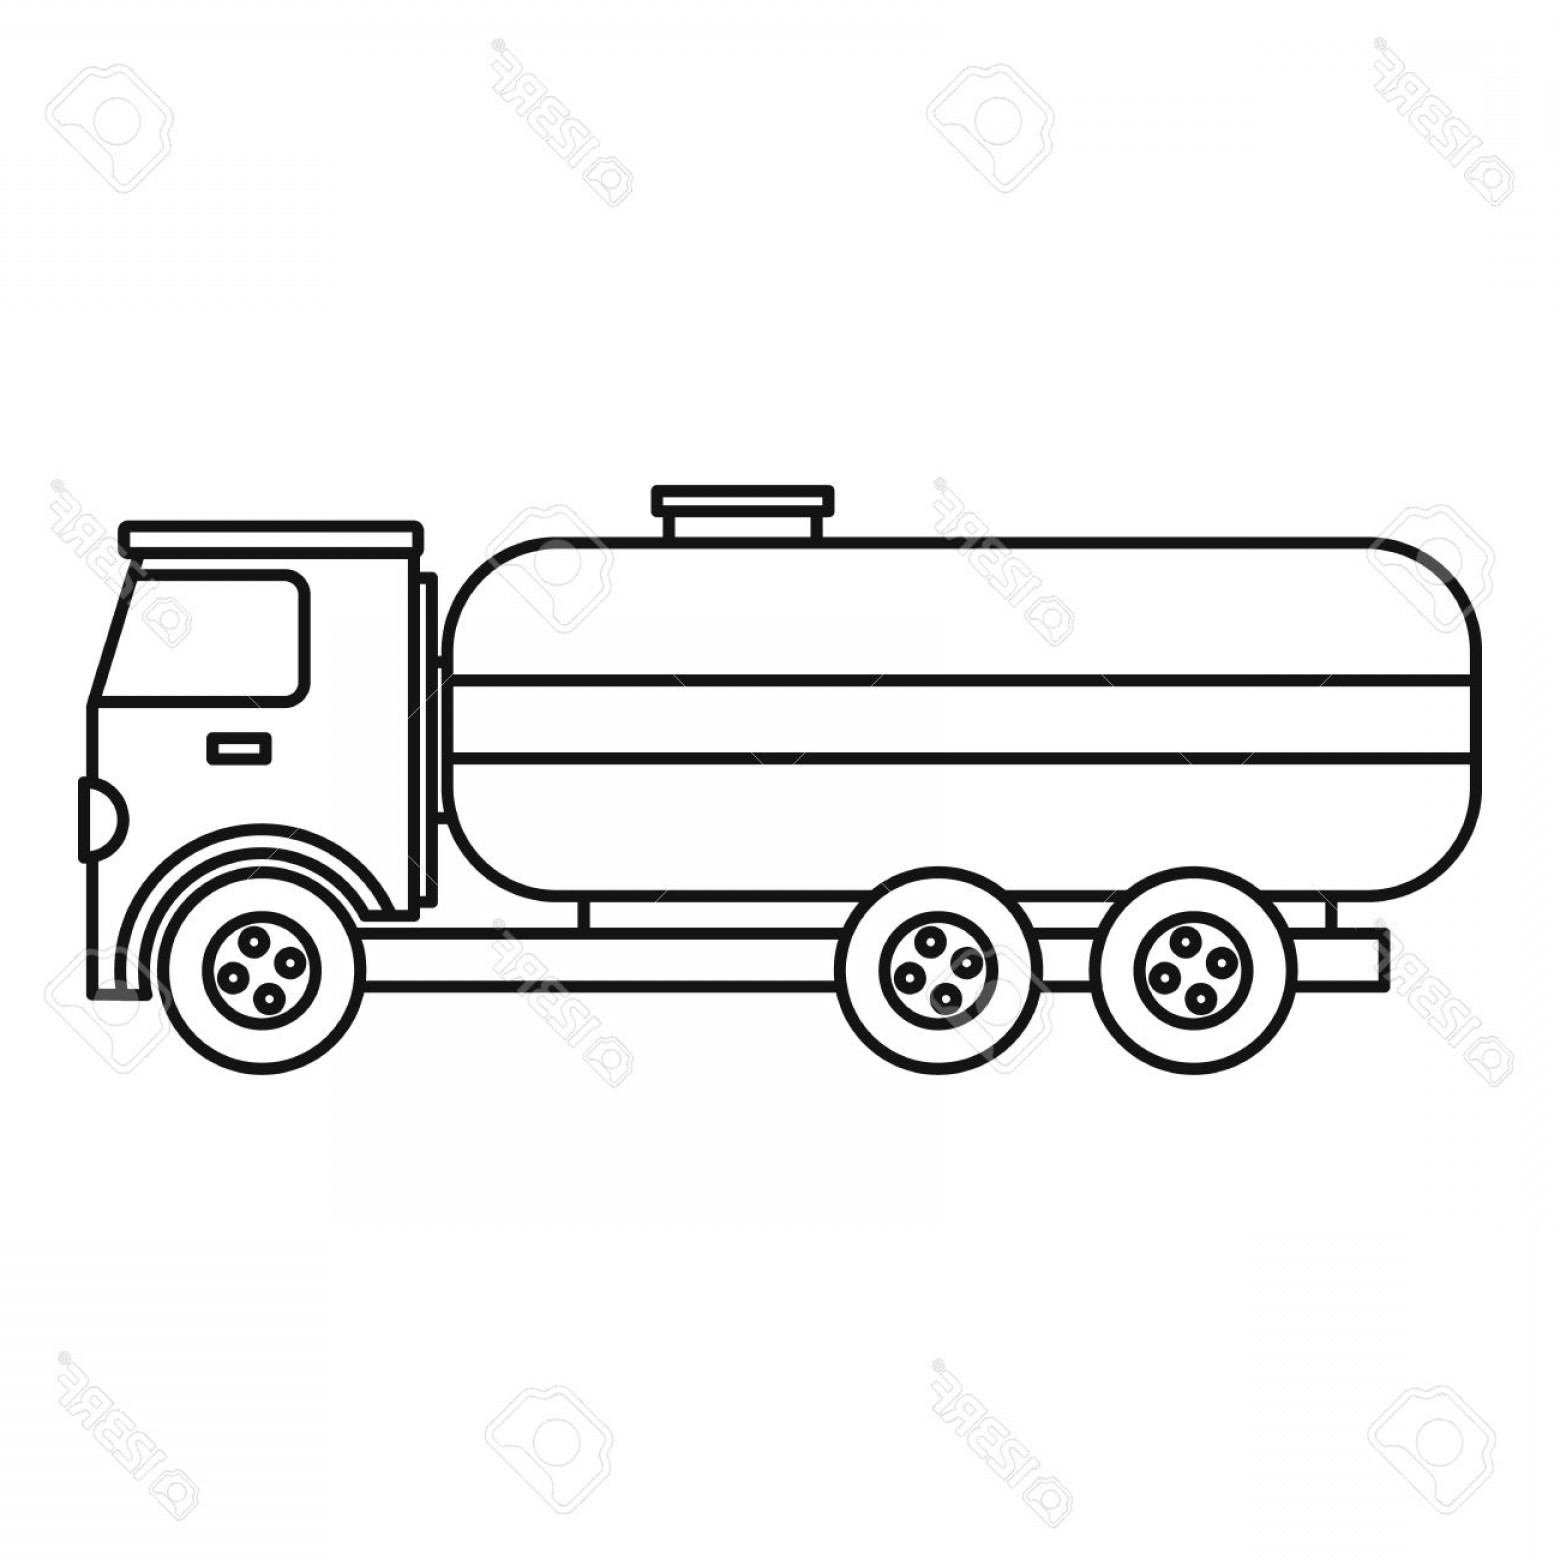 Tank Trucks Vector Art: Photostock Vector Fuel Tanker Truck Icon Outline Illustration Of Fuel Tanker Truck Vector Icon For Webicon Outline Ill